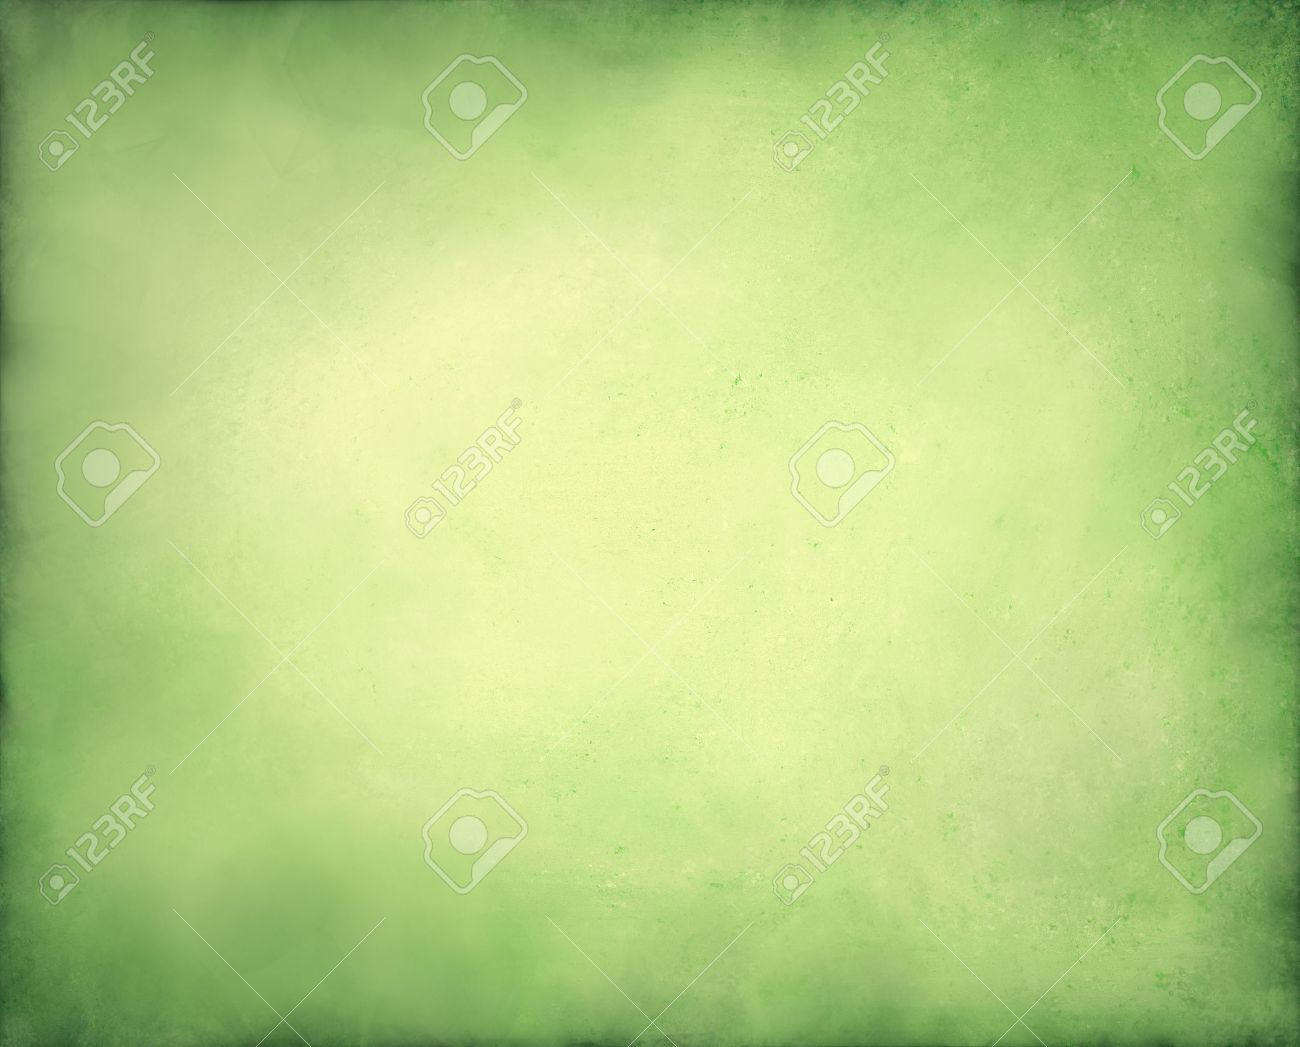 pale abstract green background with yellow center and soft pastel vintage grunge background texture design on border, light green paper page, old abstract background Christmas design Stock Photo - 13659700